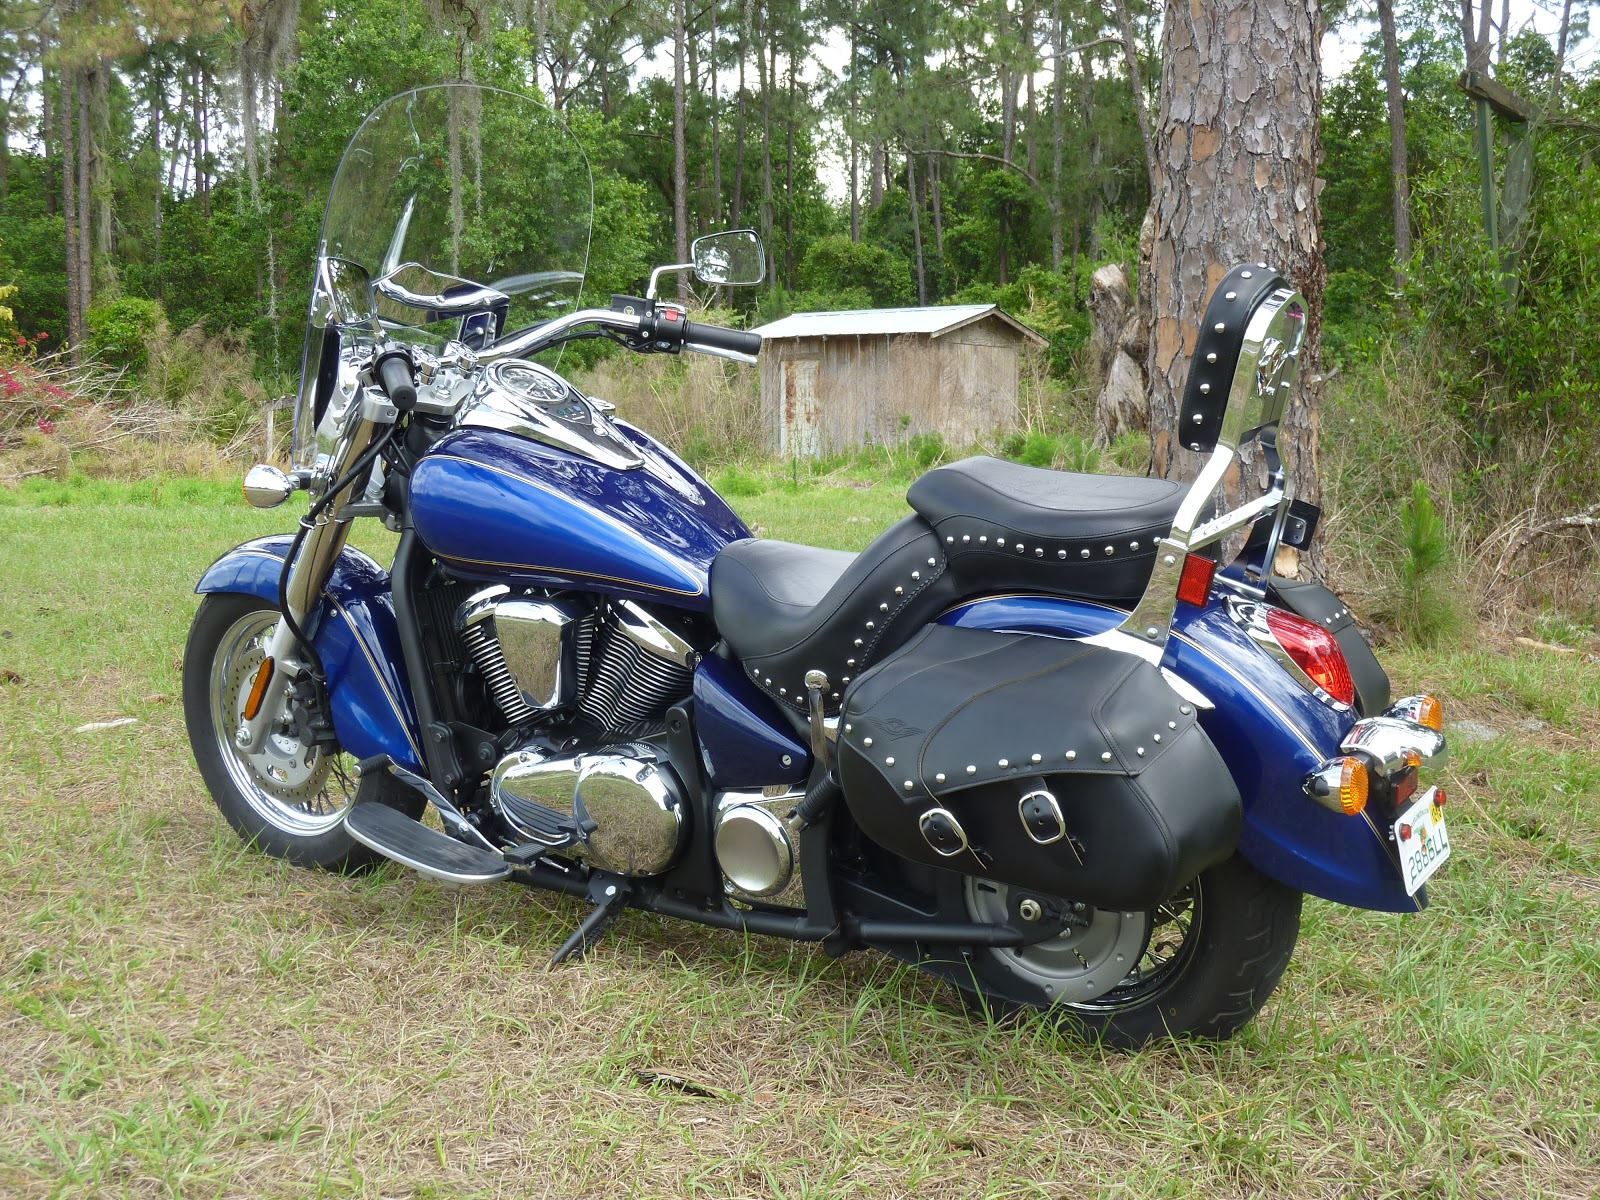 Back Road Motorcycle Rides  Kawasaki Vulcan 900 Review